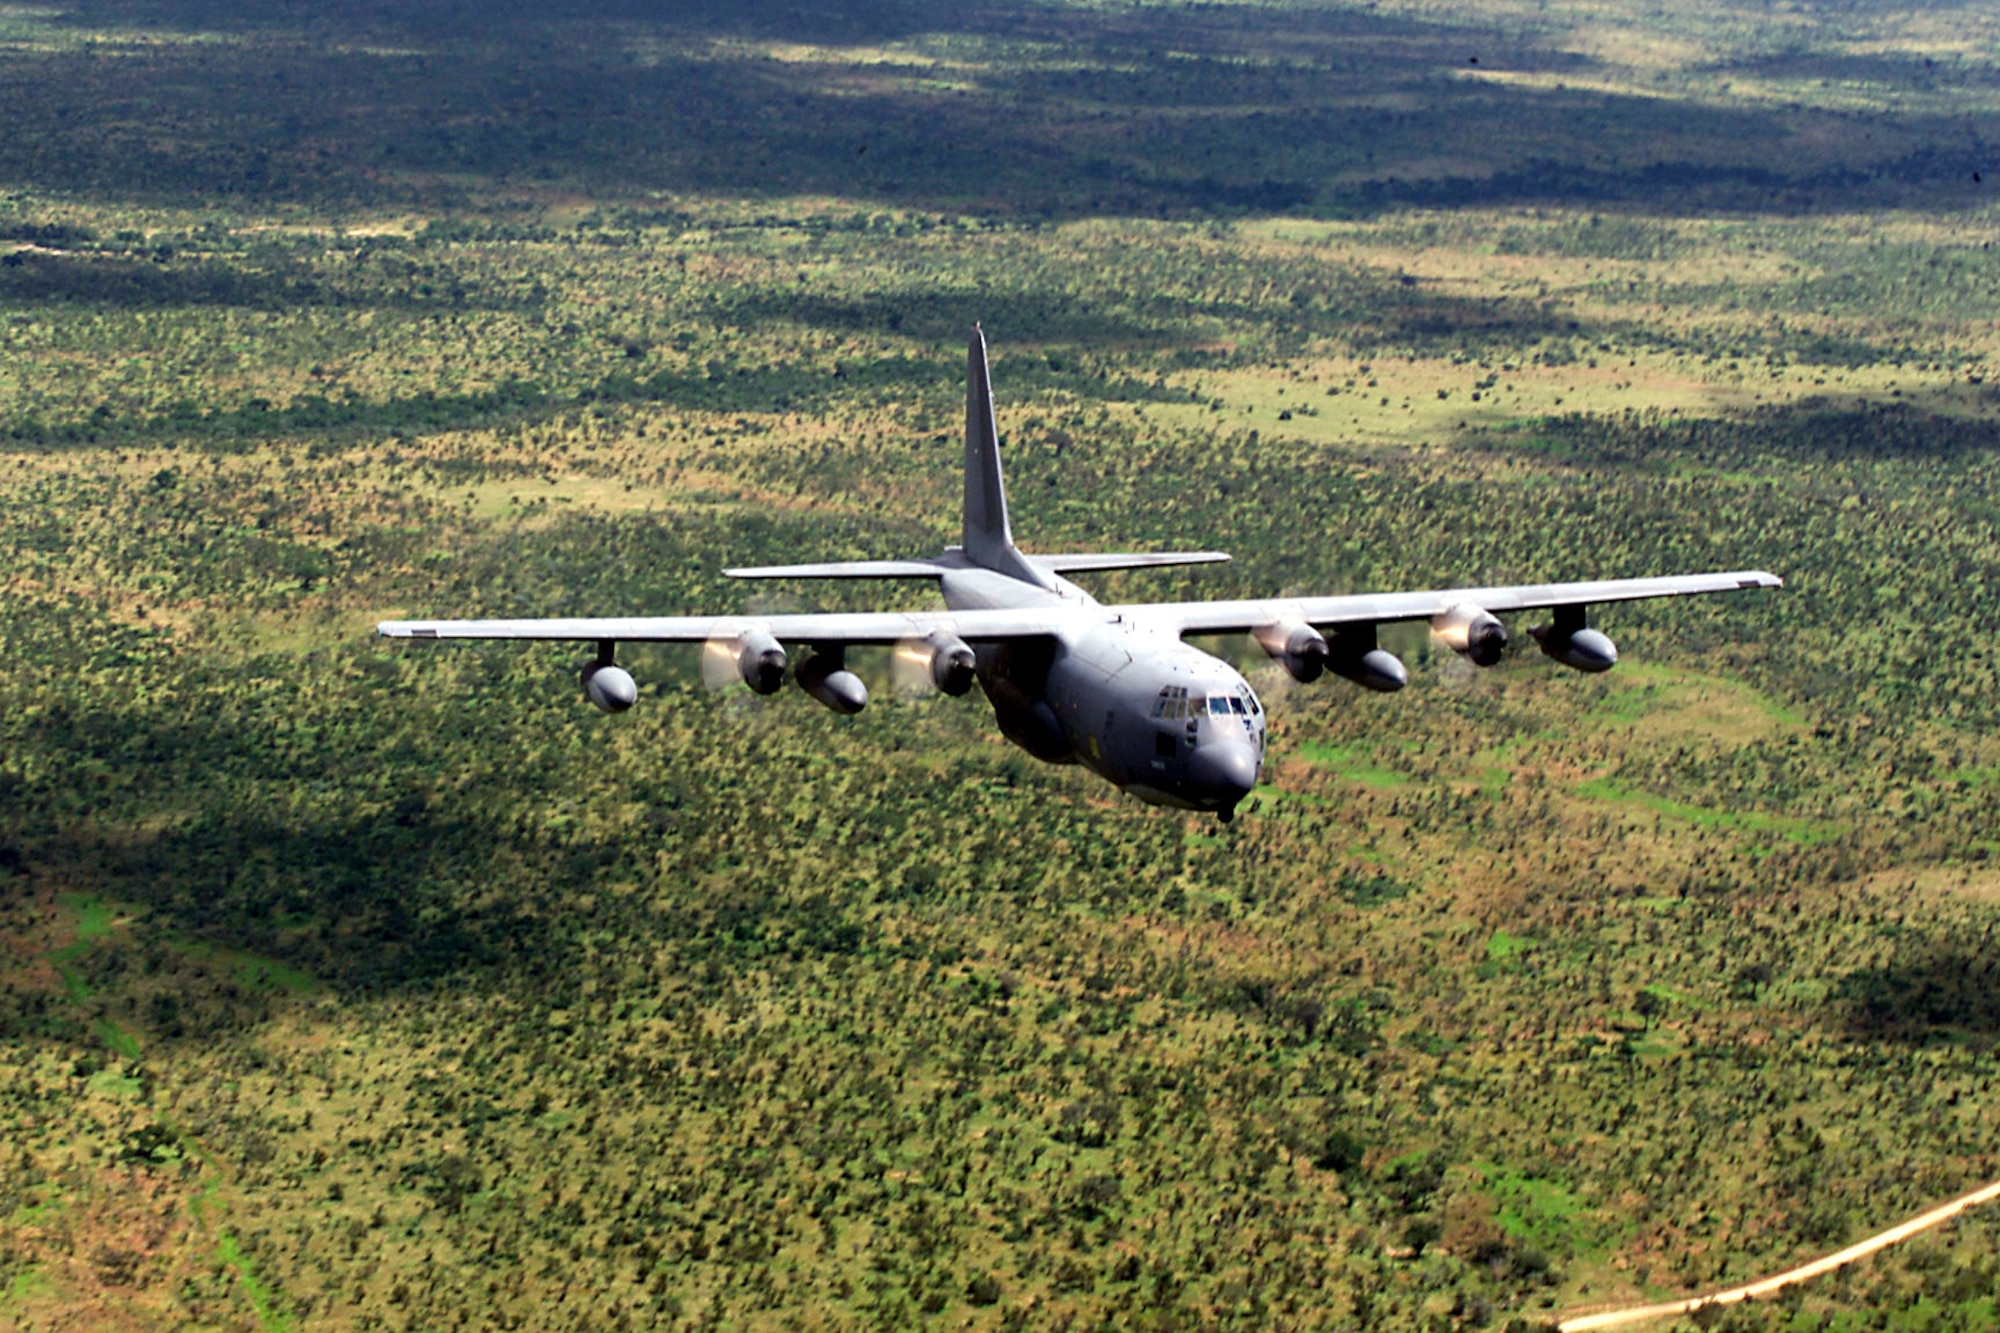 """An MC-130 participates in Mozambique flood relief effort in March 2000 during Operation Atlas Response. Relief operations focused on providing food, water and medical supplies to more than 650,000 people in Africa.  Joint Task Force personnel mapped """"hot spots"""" where people were at risk. They also used infrared cameras to identify road and rail breaks that could be repaired quickly to expedite aid delivery instead of relying almost solely on airlift. (courtesy photo)"""